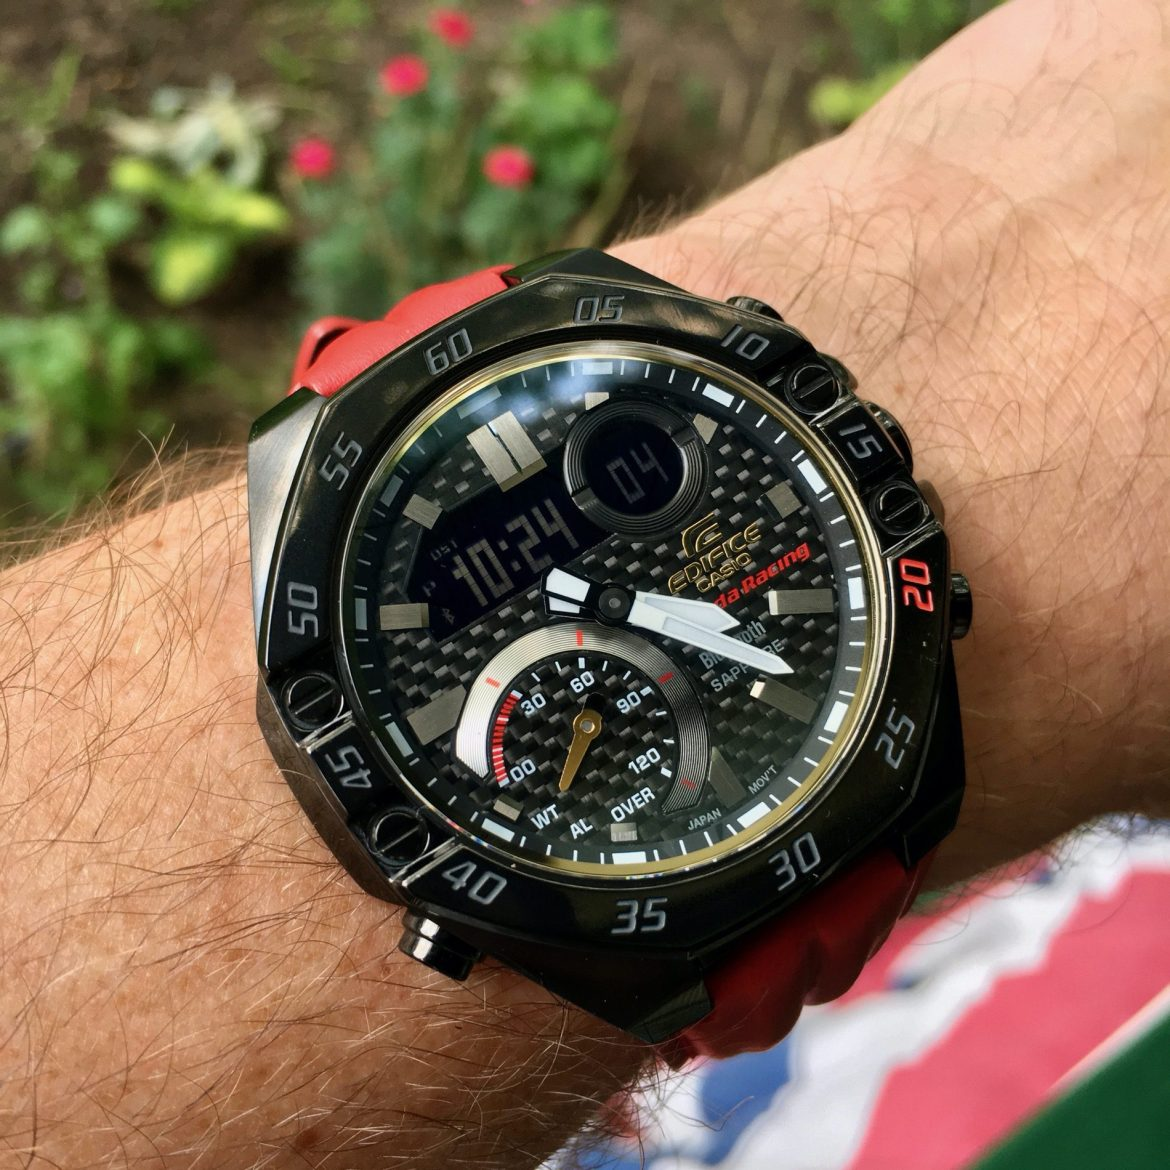 Put the pedal to the metal with the Casio Edifice Honda Racing edition